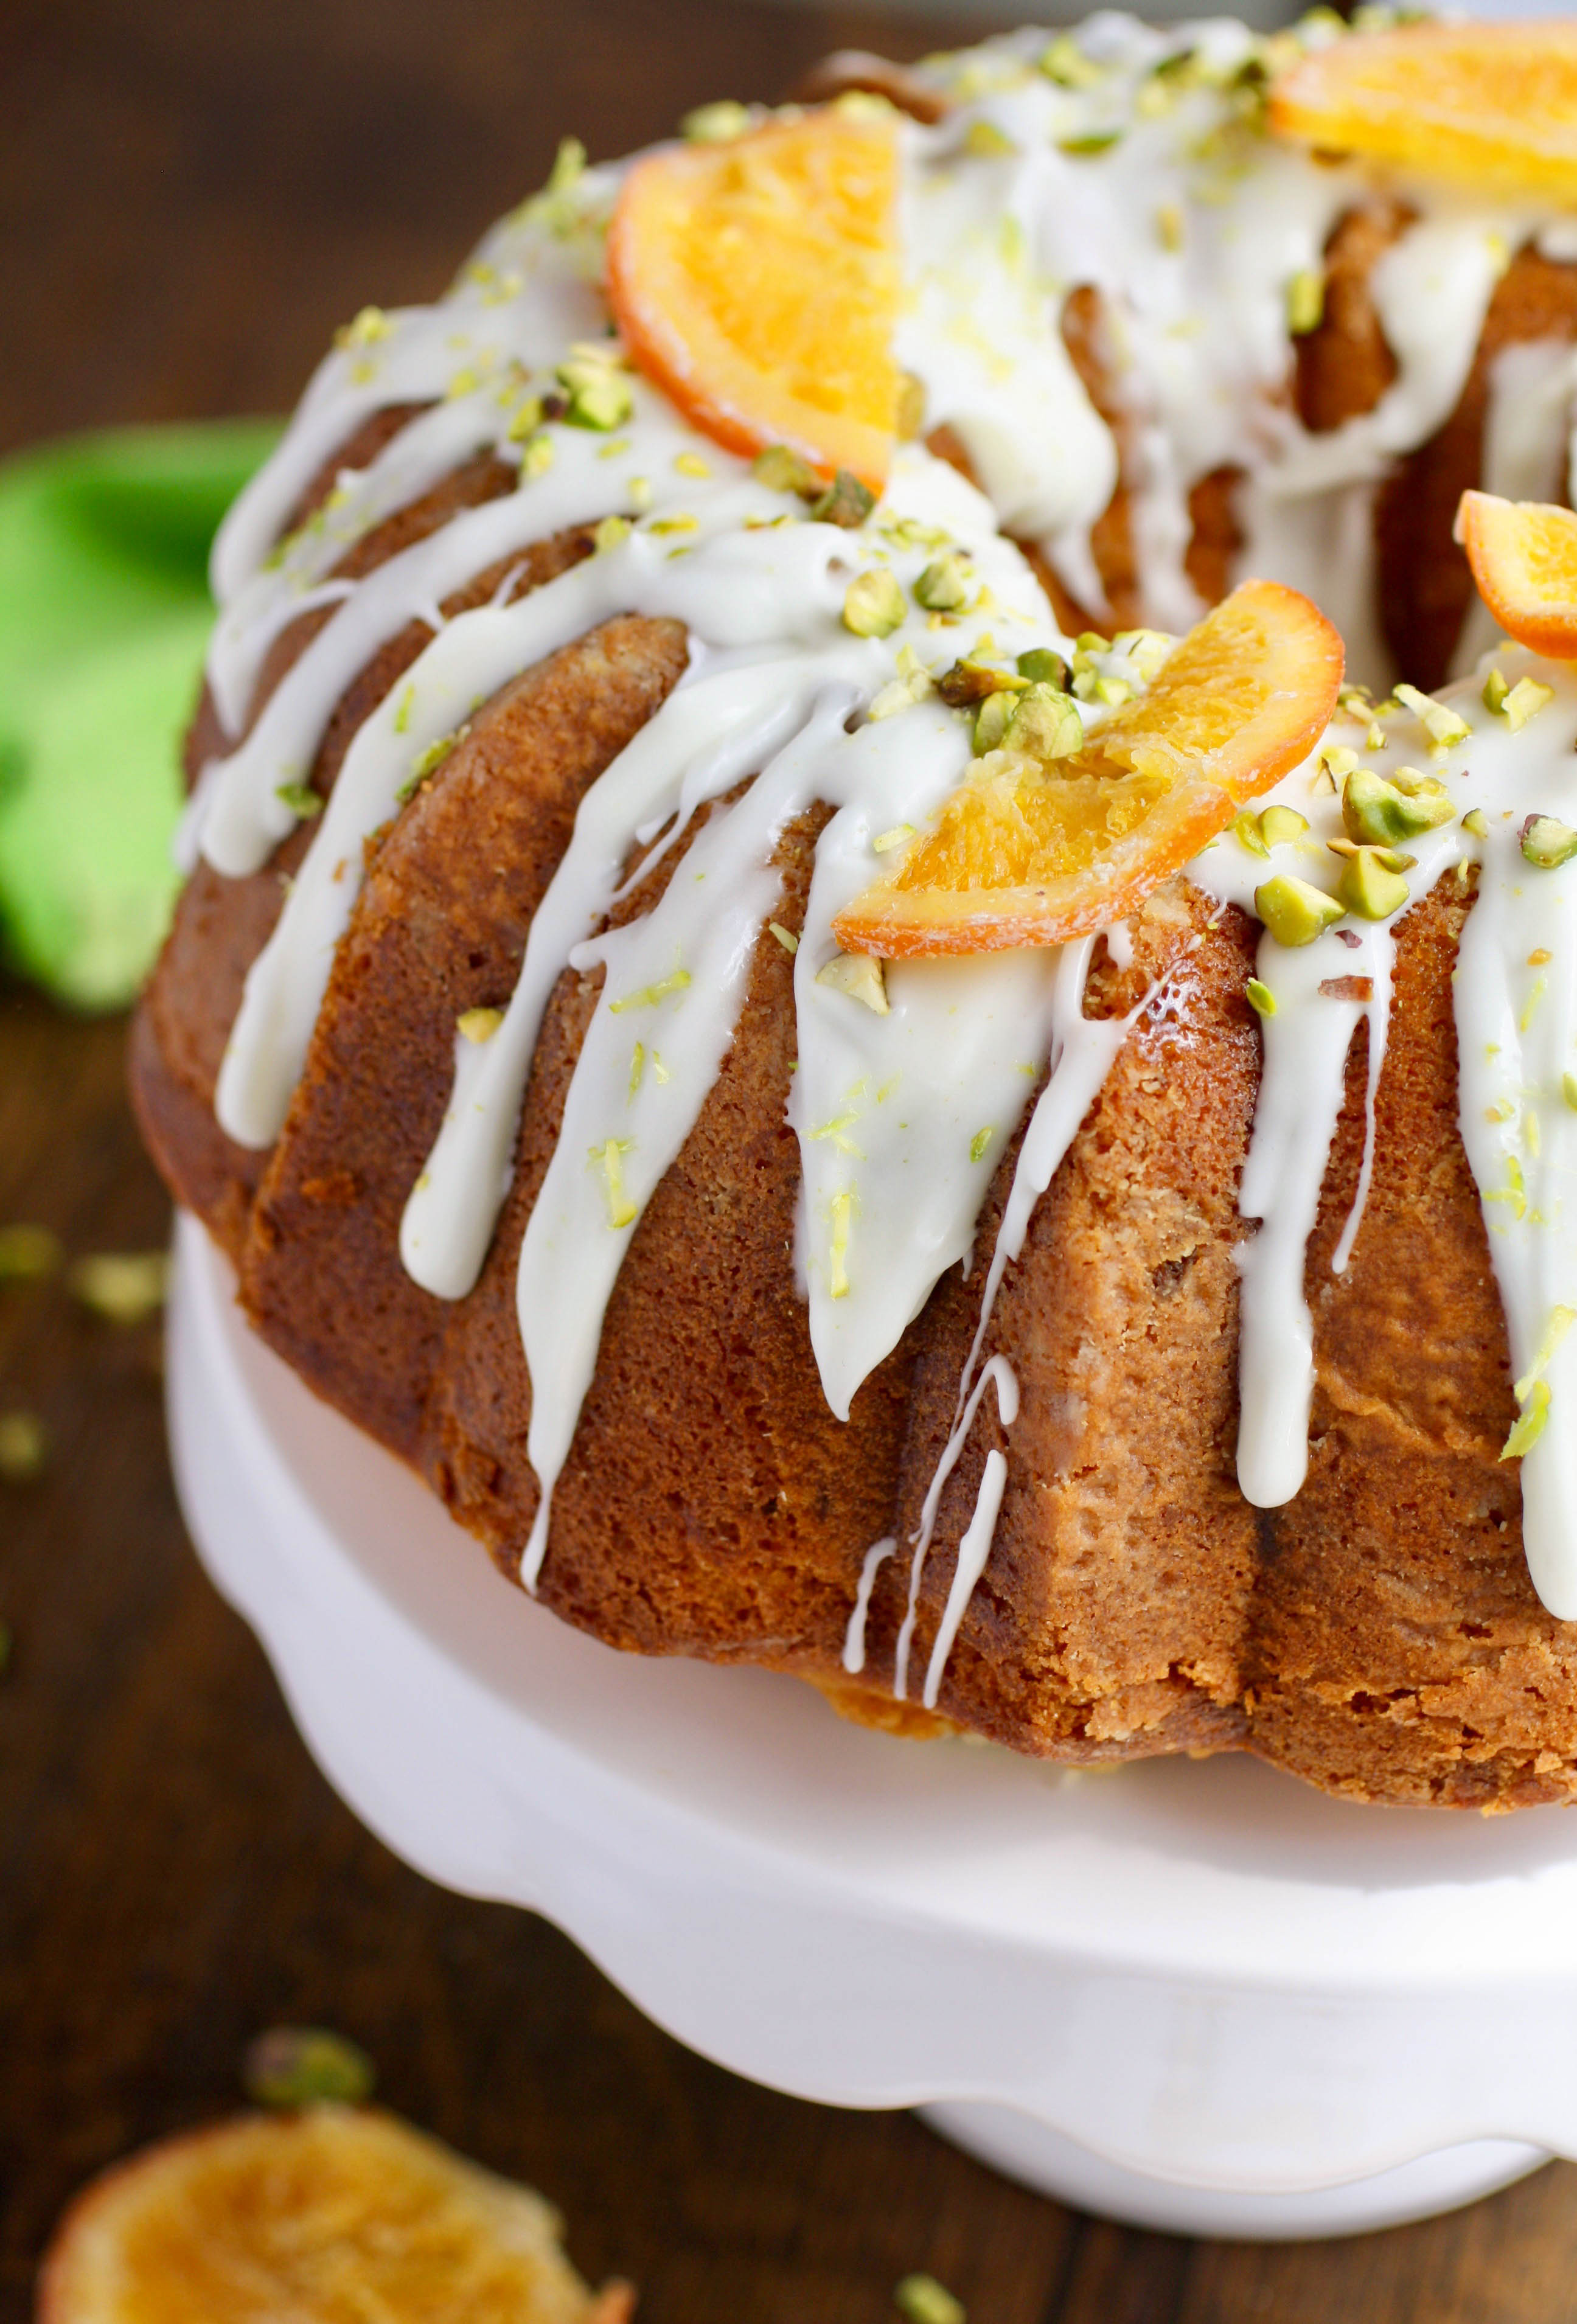 Orange Marmalade-Pistachio Bundt Cake is a lovely, special dessert. Make one for Easter or for any occasion.